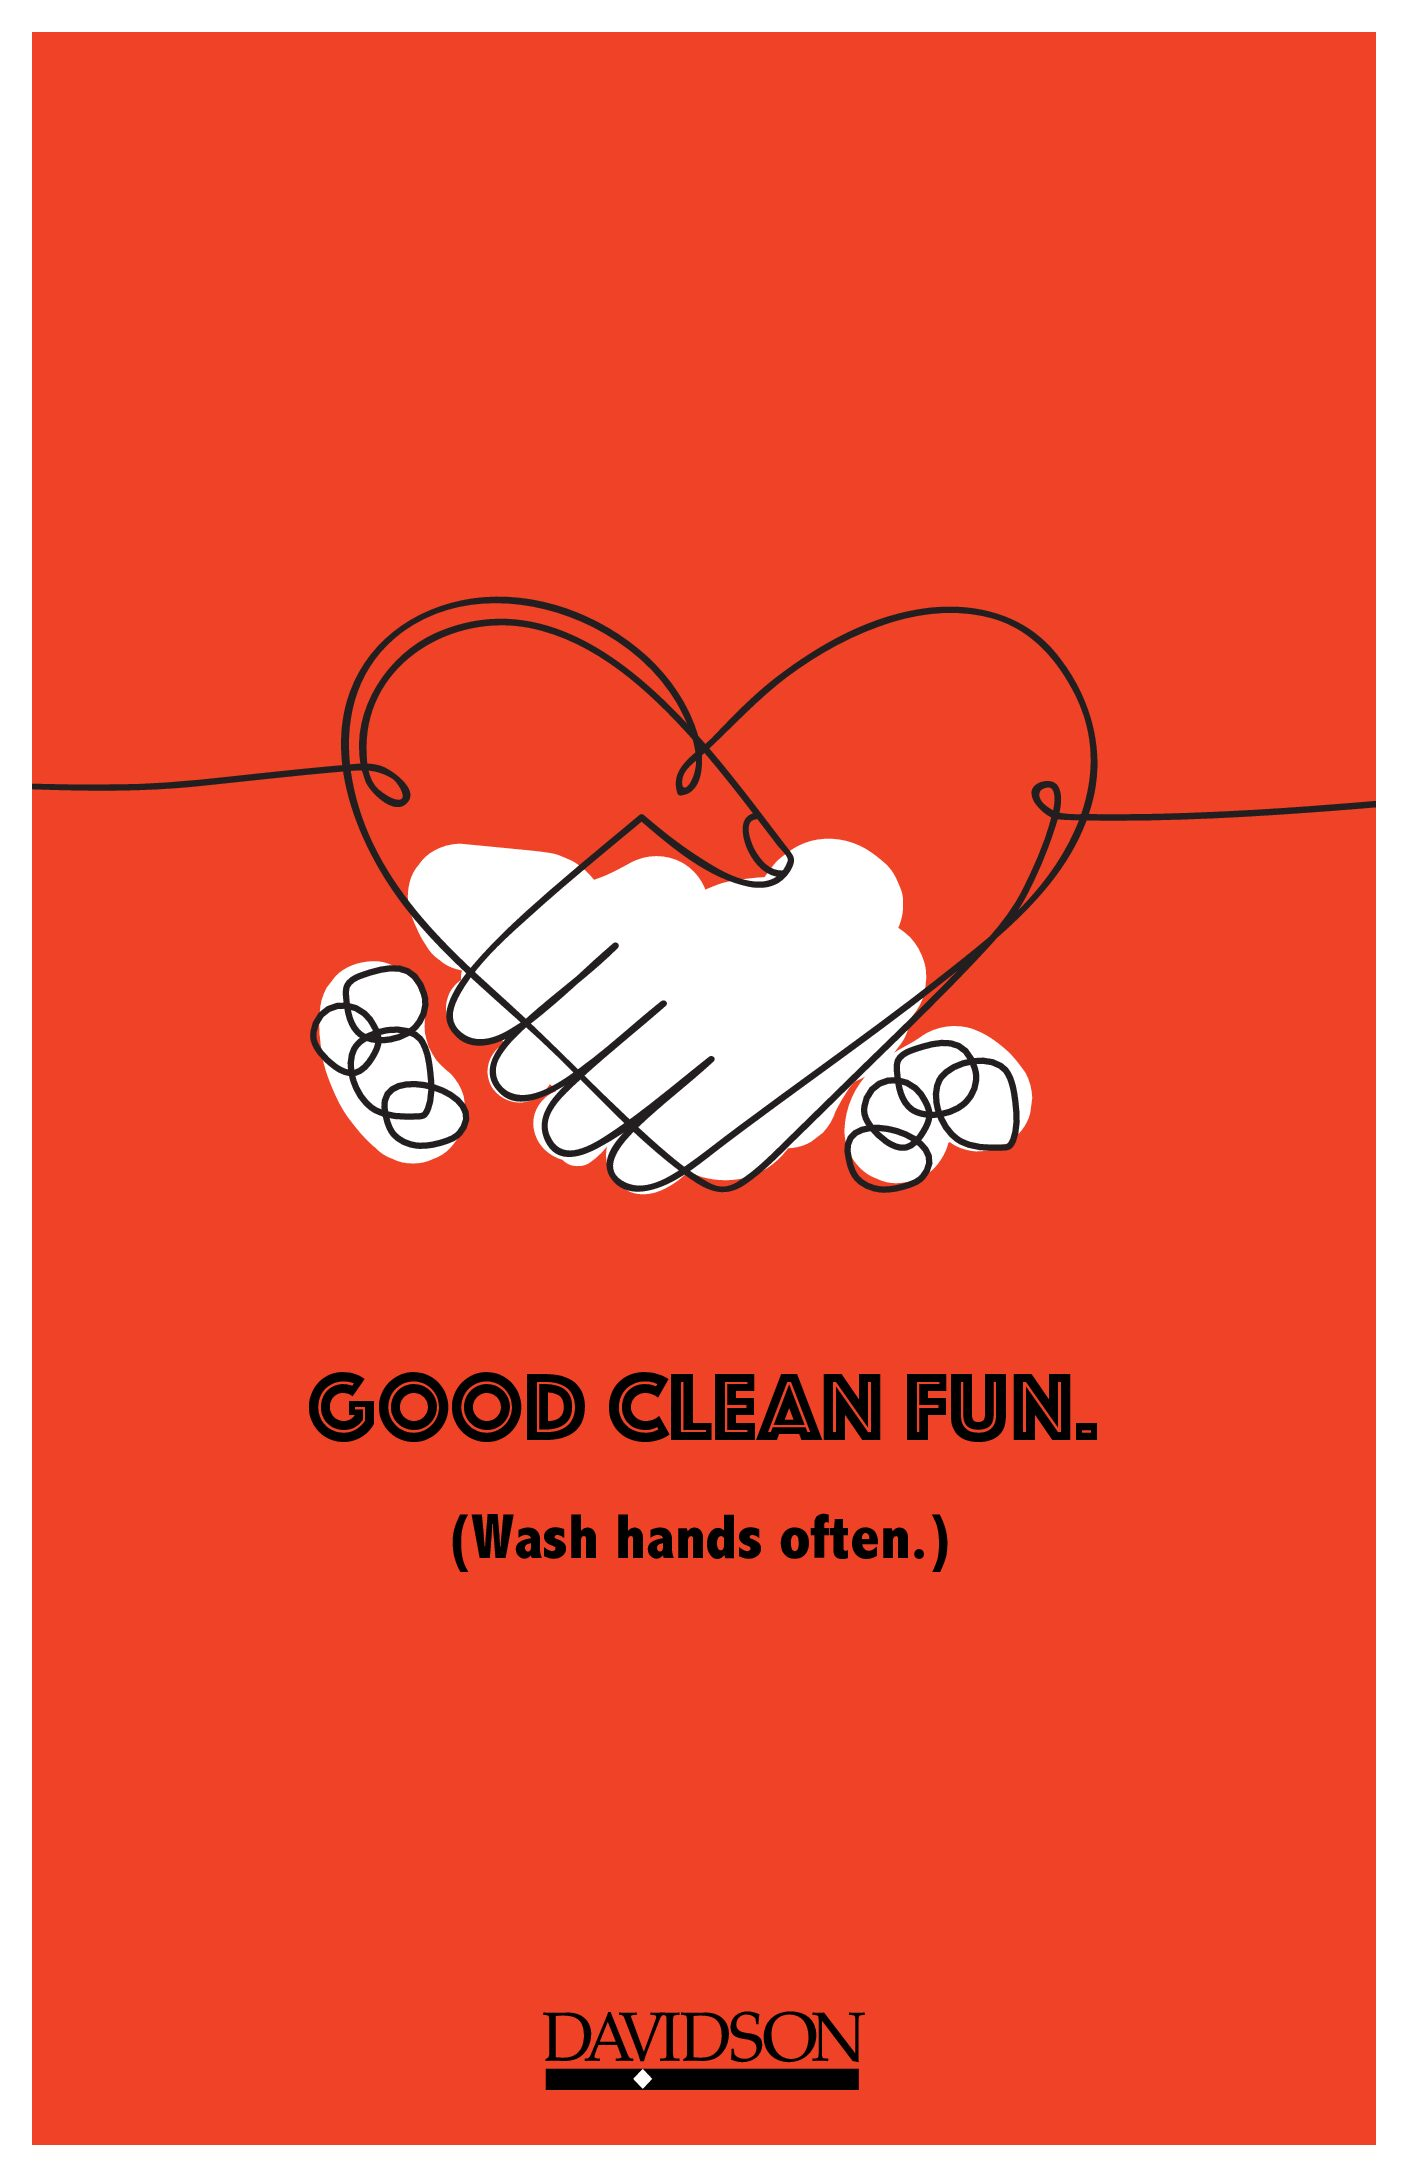 """""""Good clean fun, wash hands often"""" with heart sketch and hands lathering 11x17"""